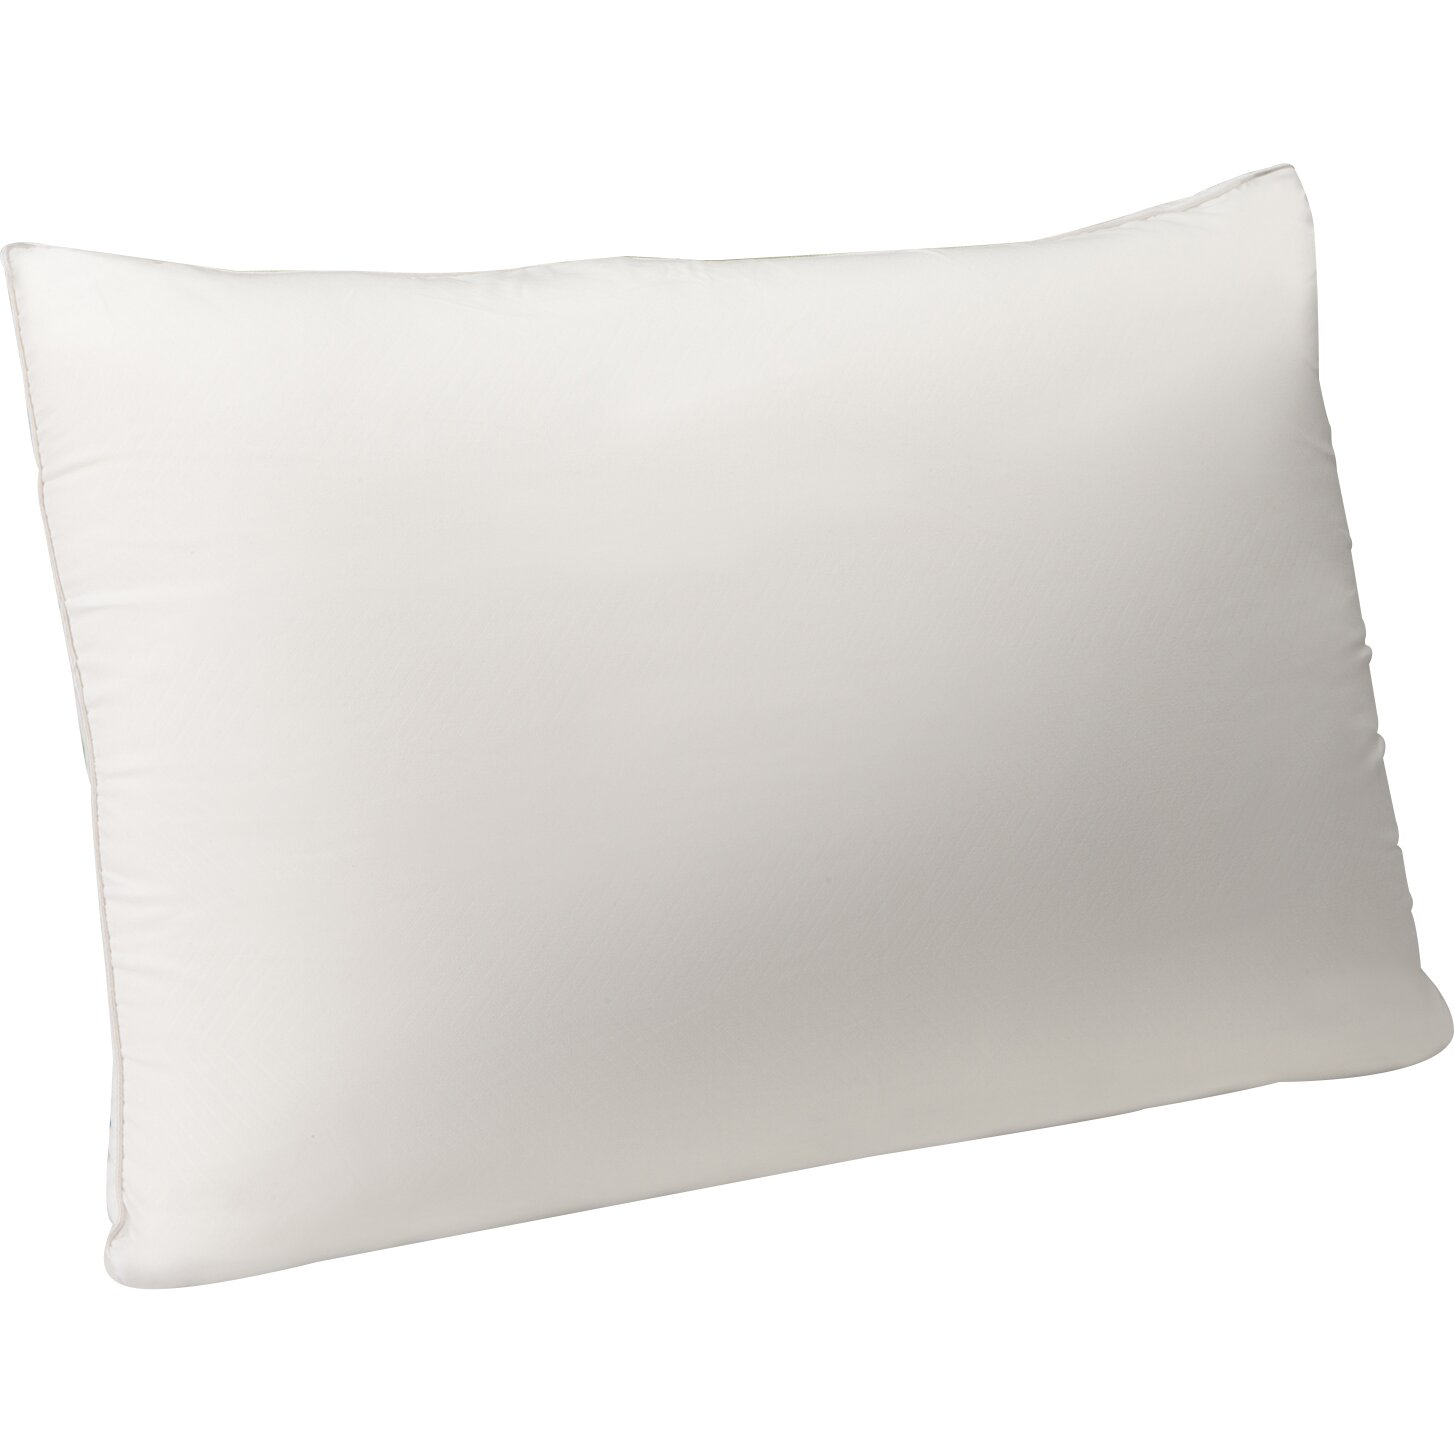 Comfort Revolution King Pillow Comfort Revolution Comfort Polyfill Queen Pillow Wayfair